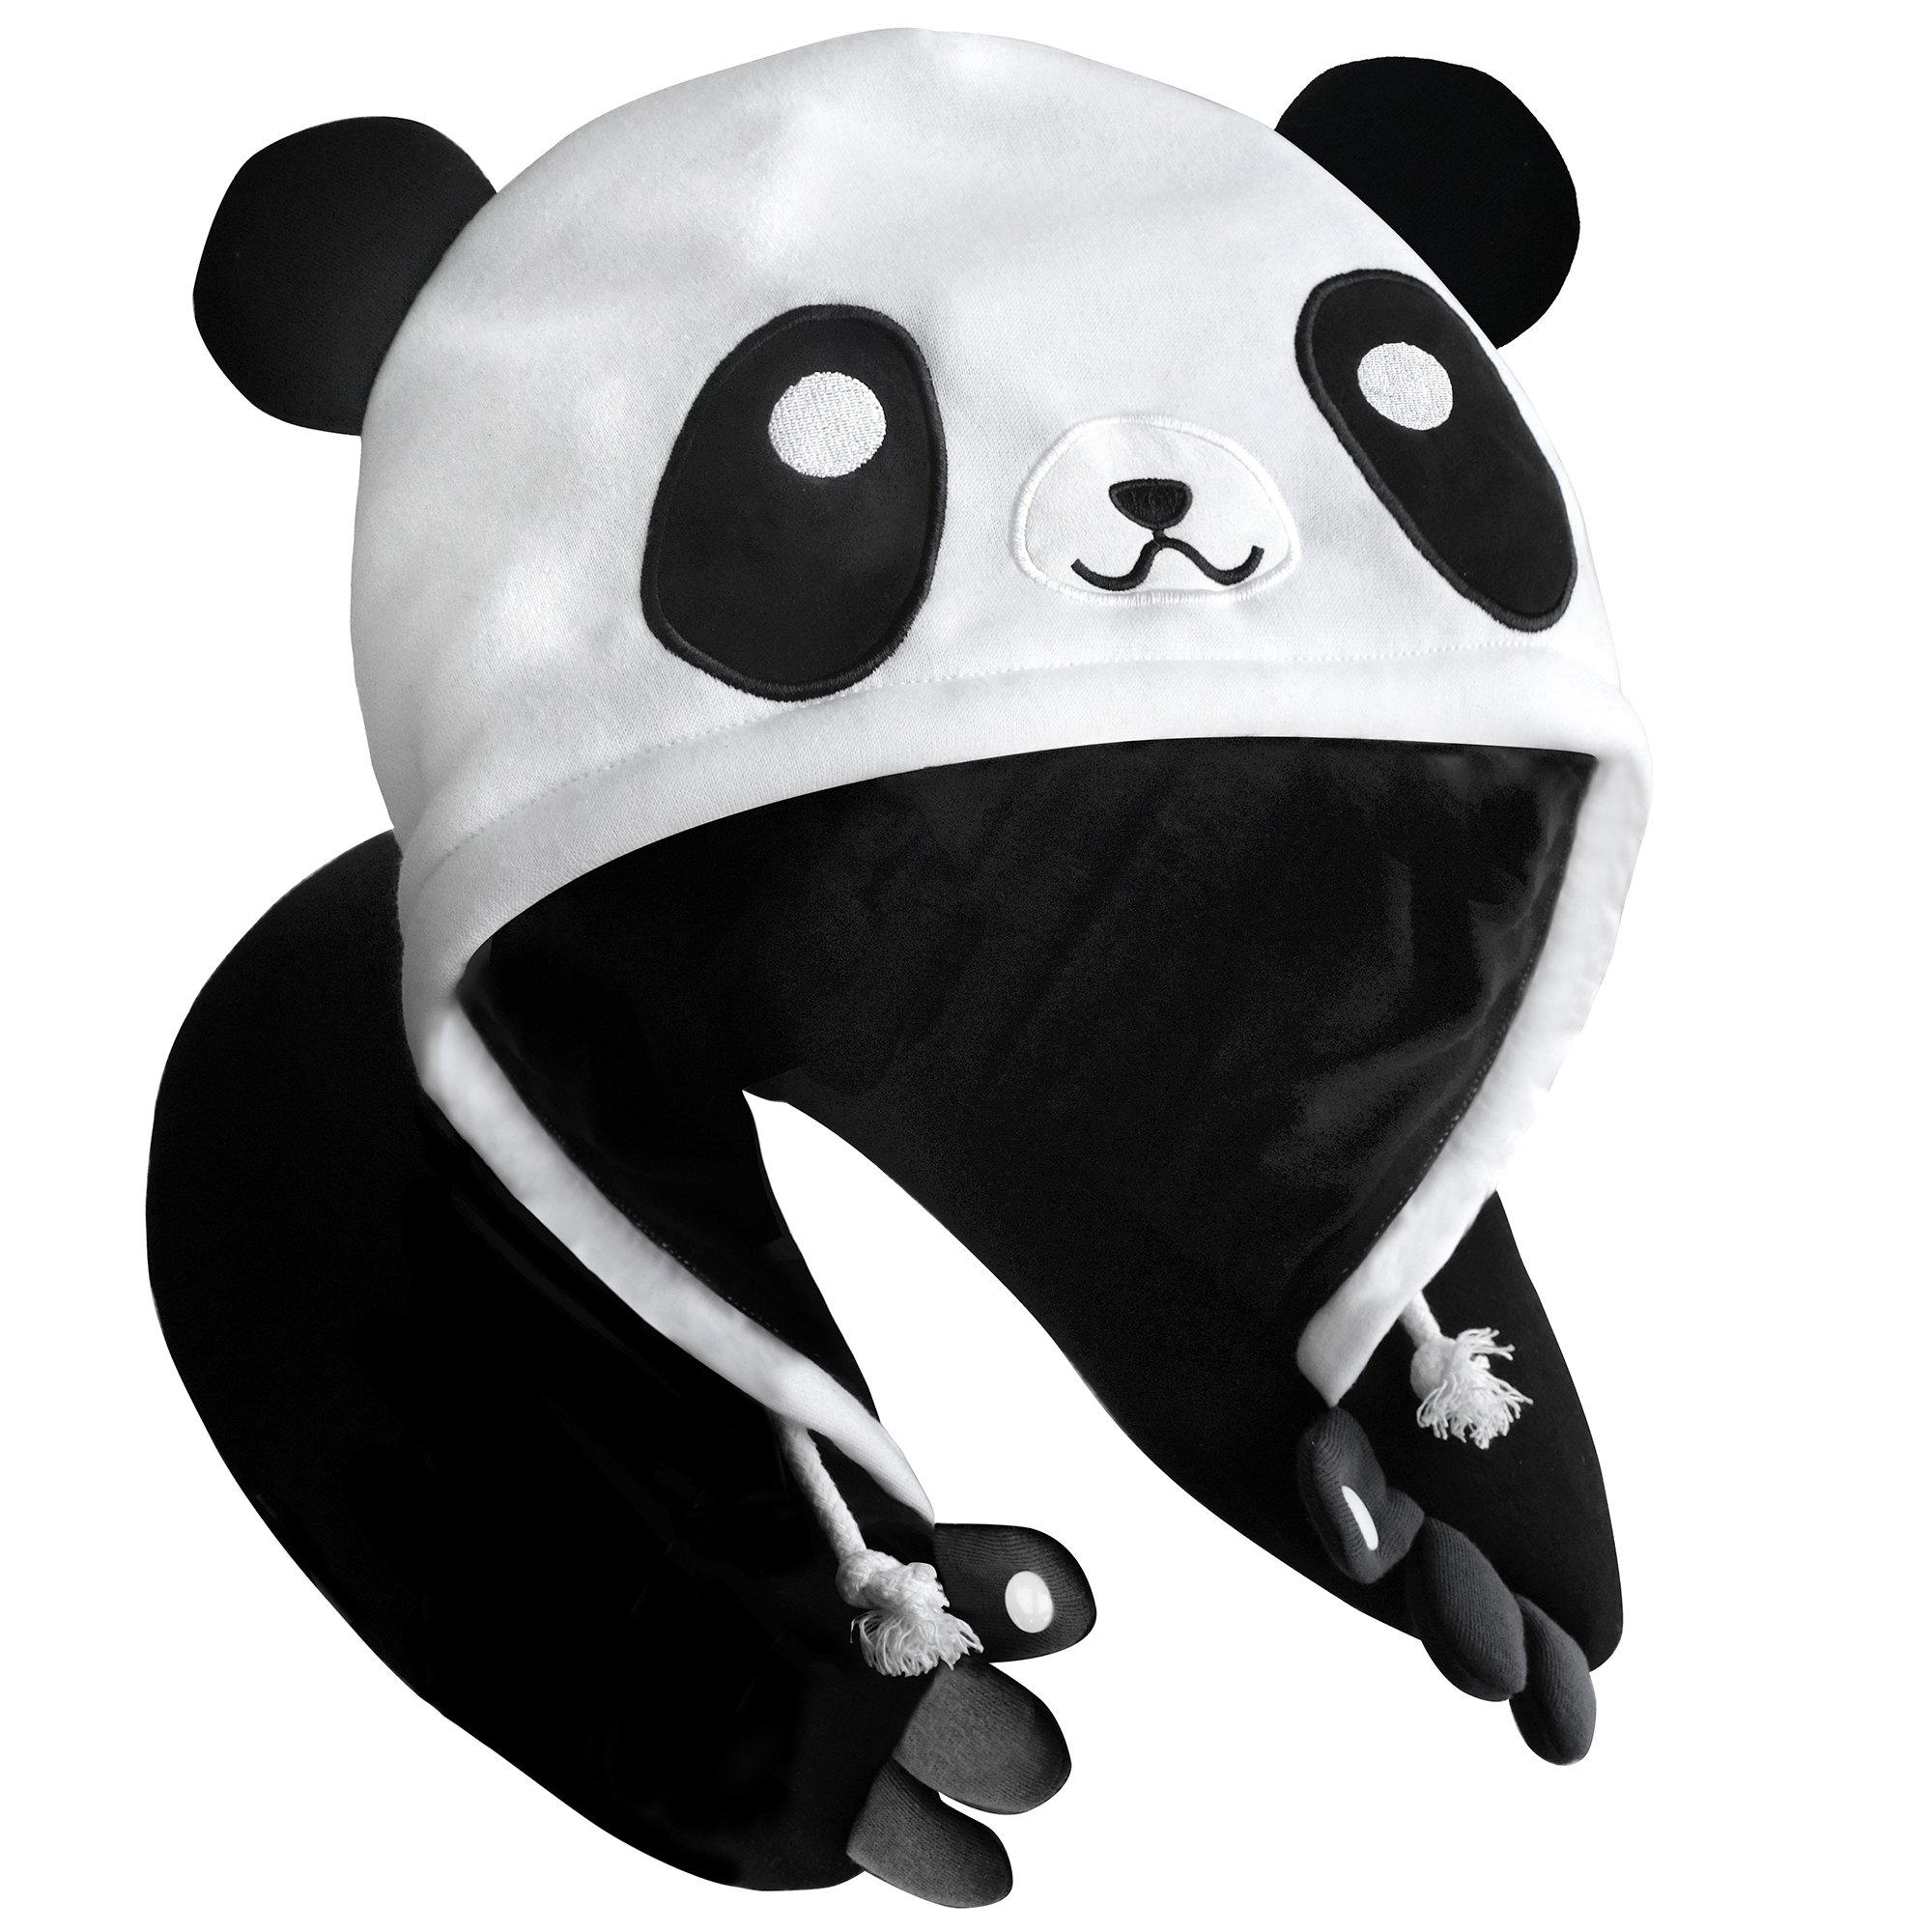 Panda Hooded Animal Plush Neck Pillow, Microbeads for Comfort with Adjustable Drawstring, Perfect For Airplane Travel, Neck Support, as a Panda costume, Gift for Panda Lovers, Designed In Japan